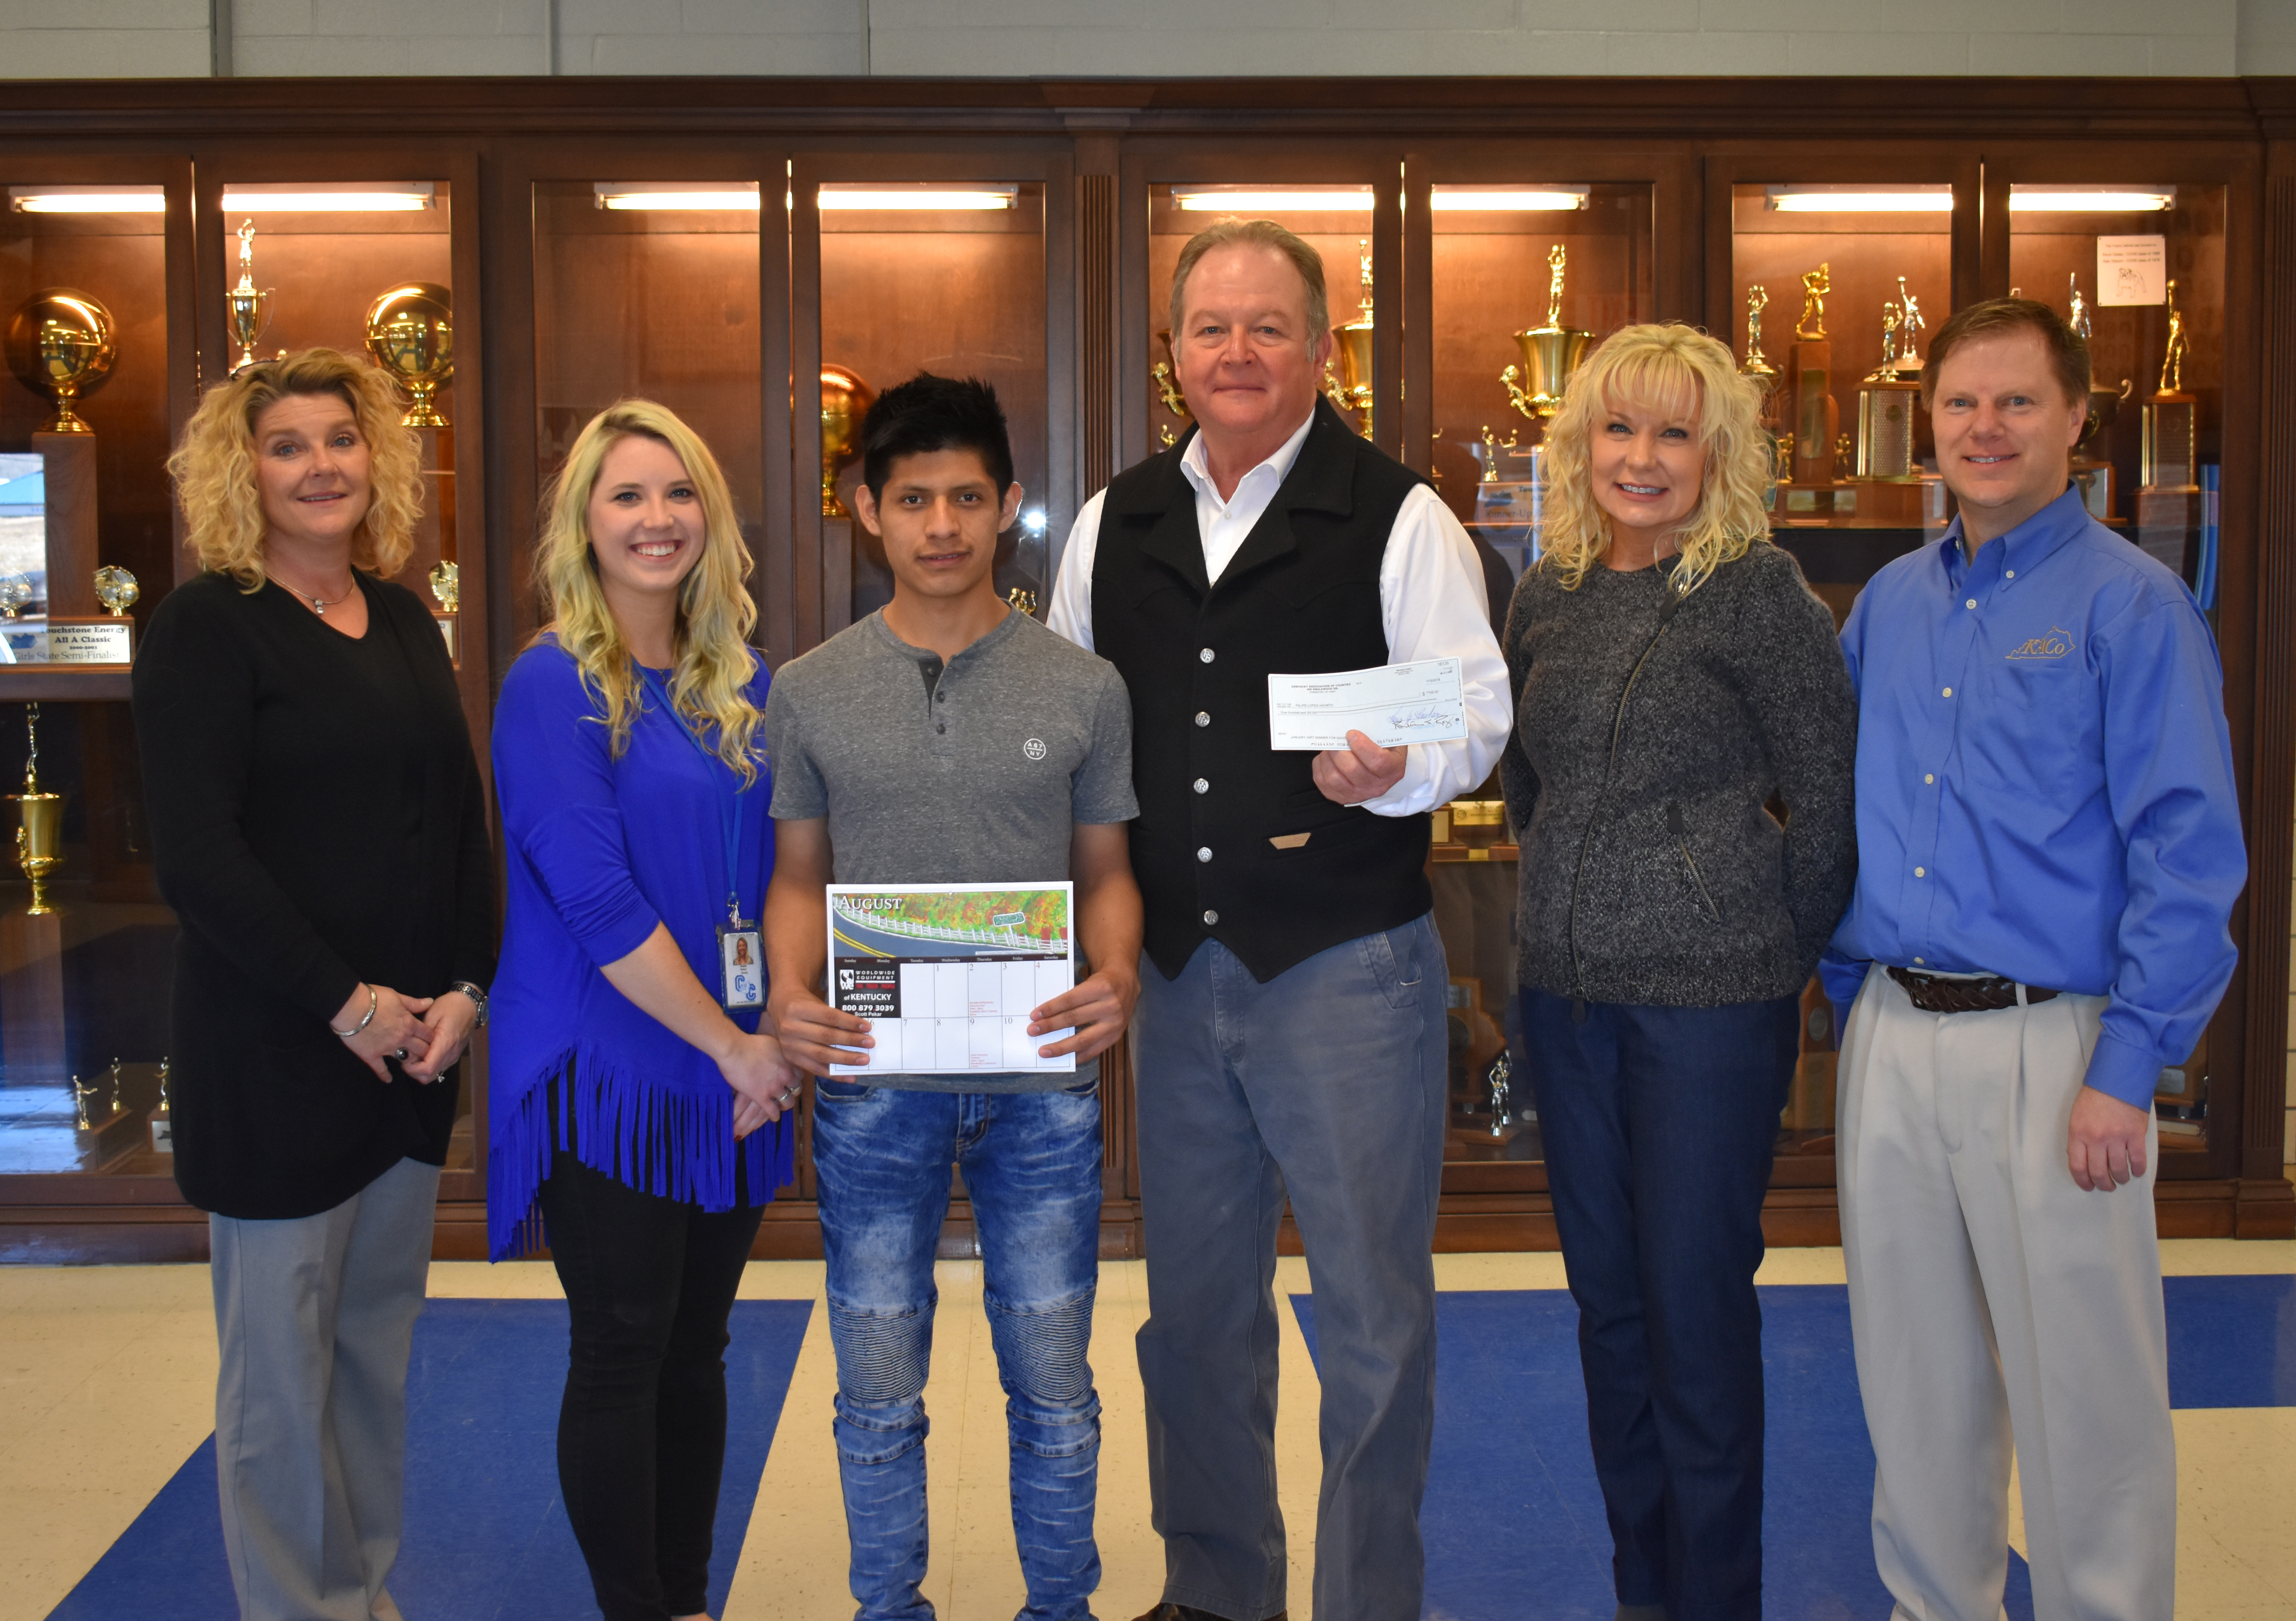 CCHS senior Felipe Lopez-Jacinto is one of thirteen students across the state whose original artwork will appear in the Kentucky Association of Counties 2018 calendar.